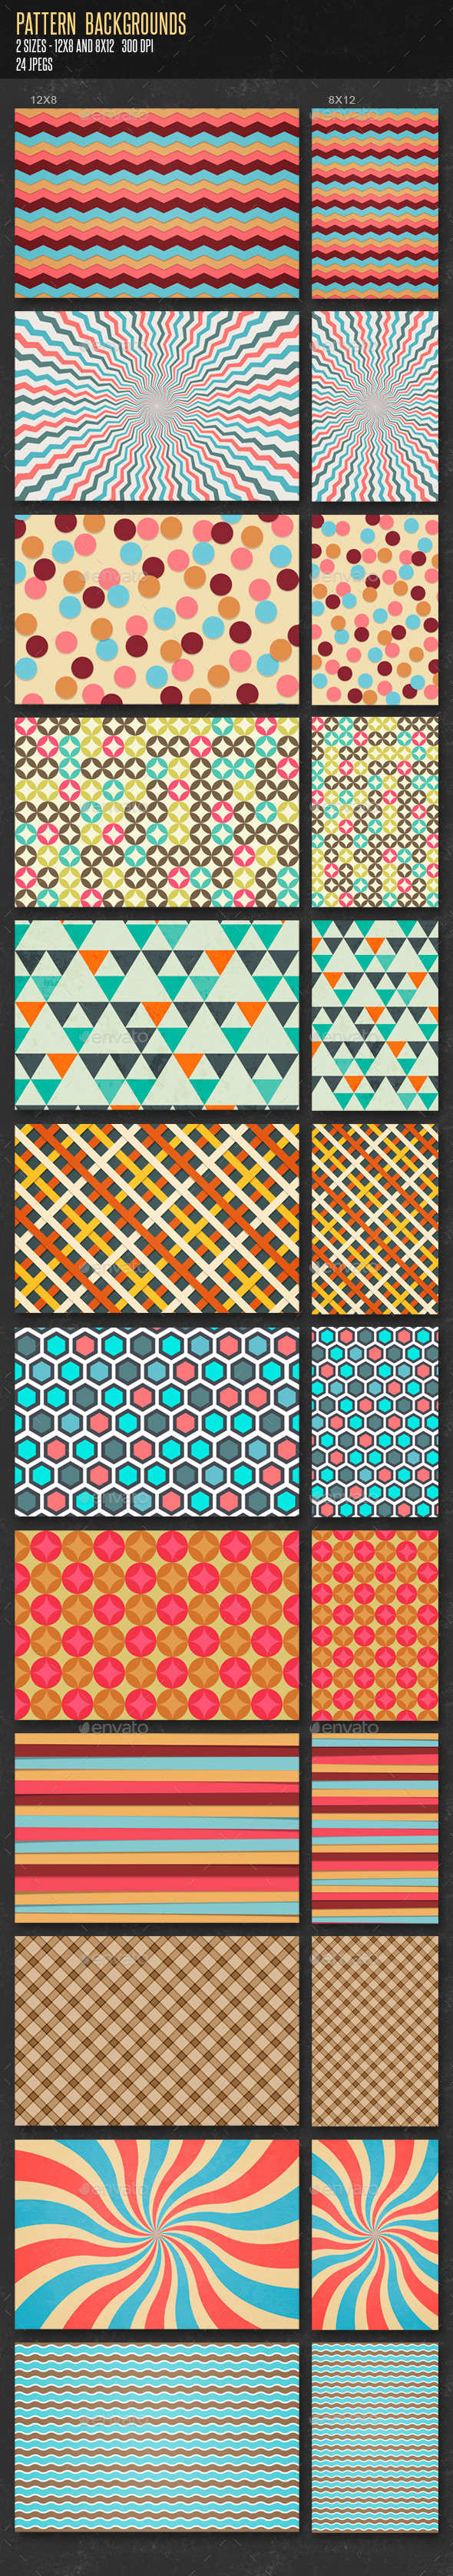 GraphicRiver Patterns Backgrounds 11373644